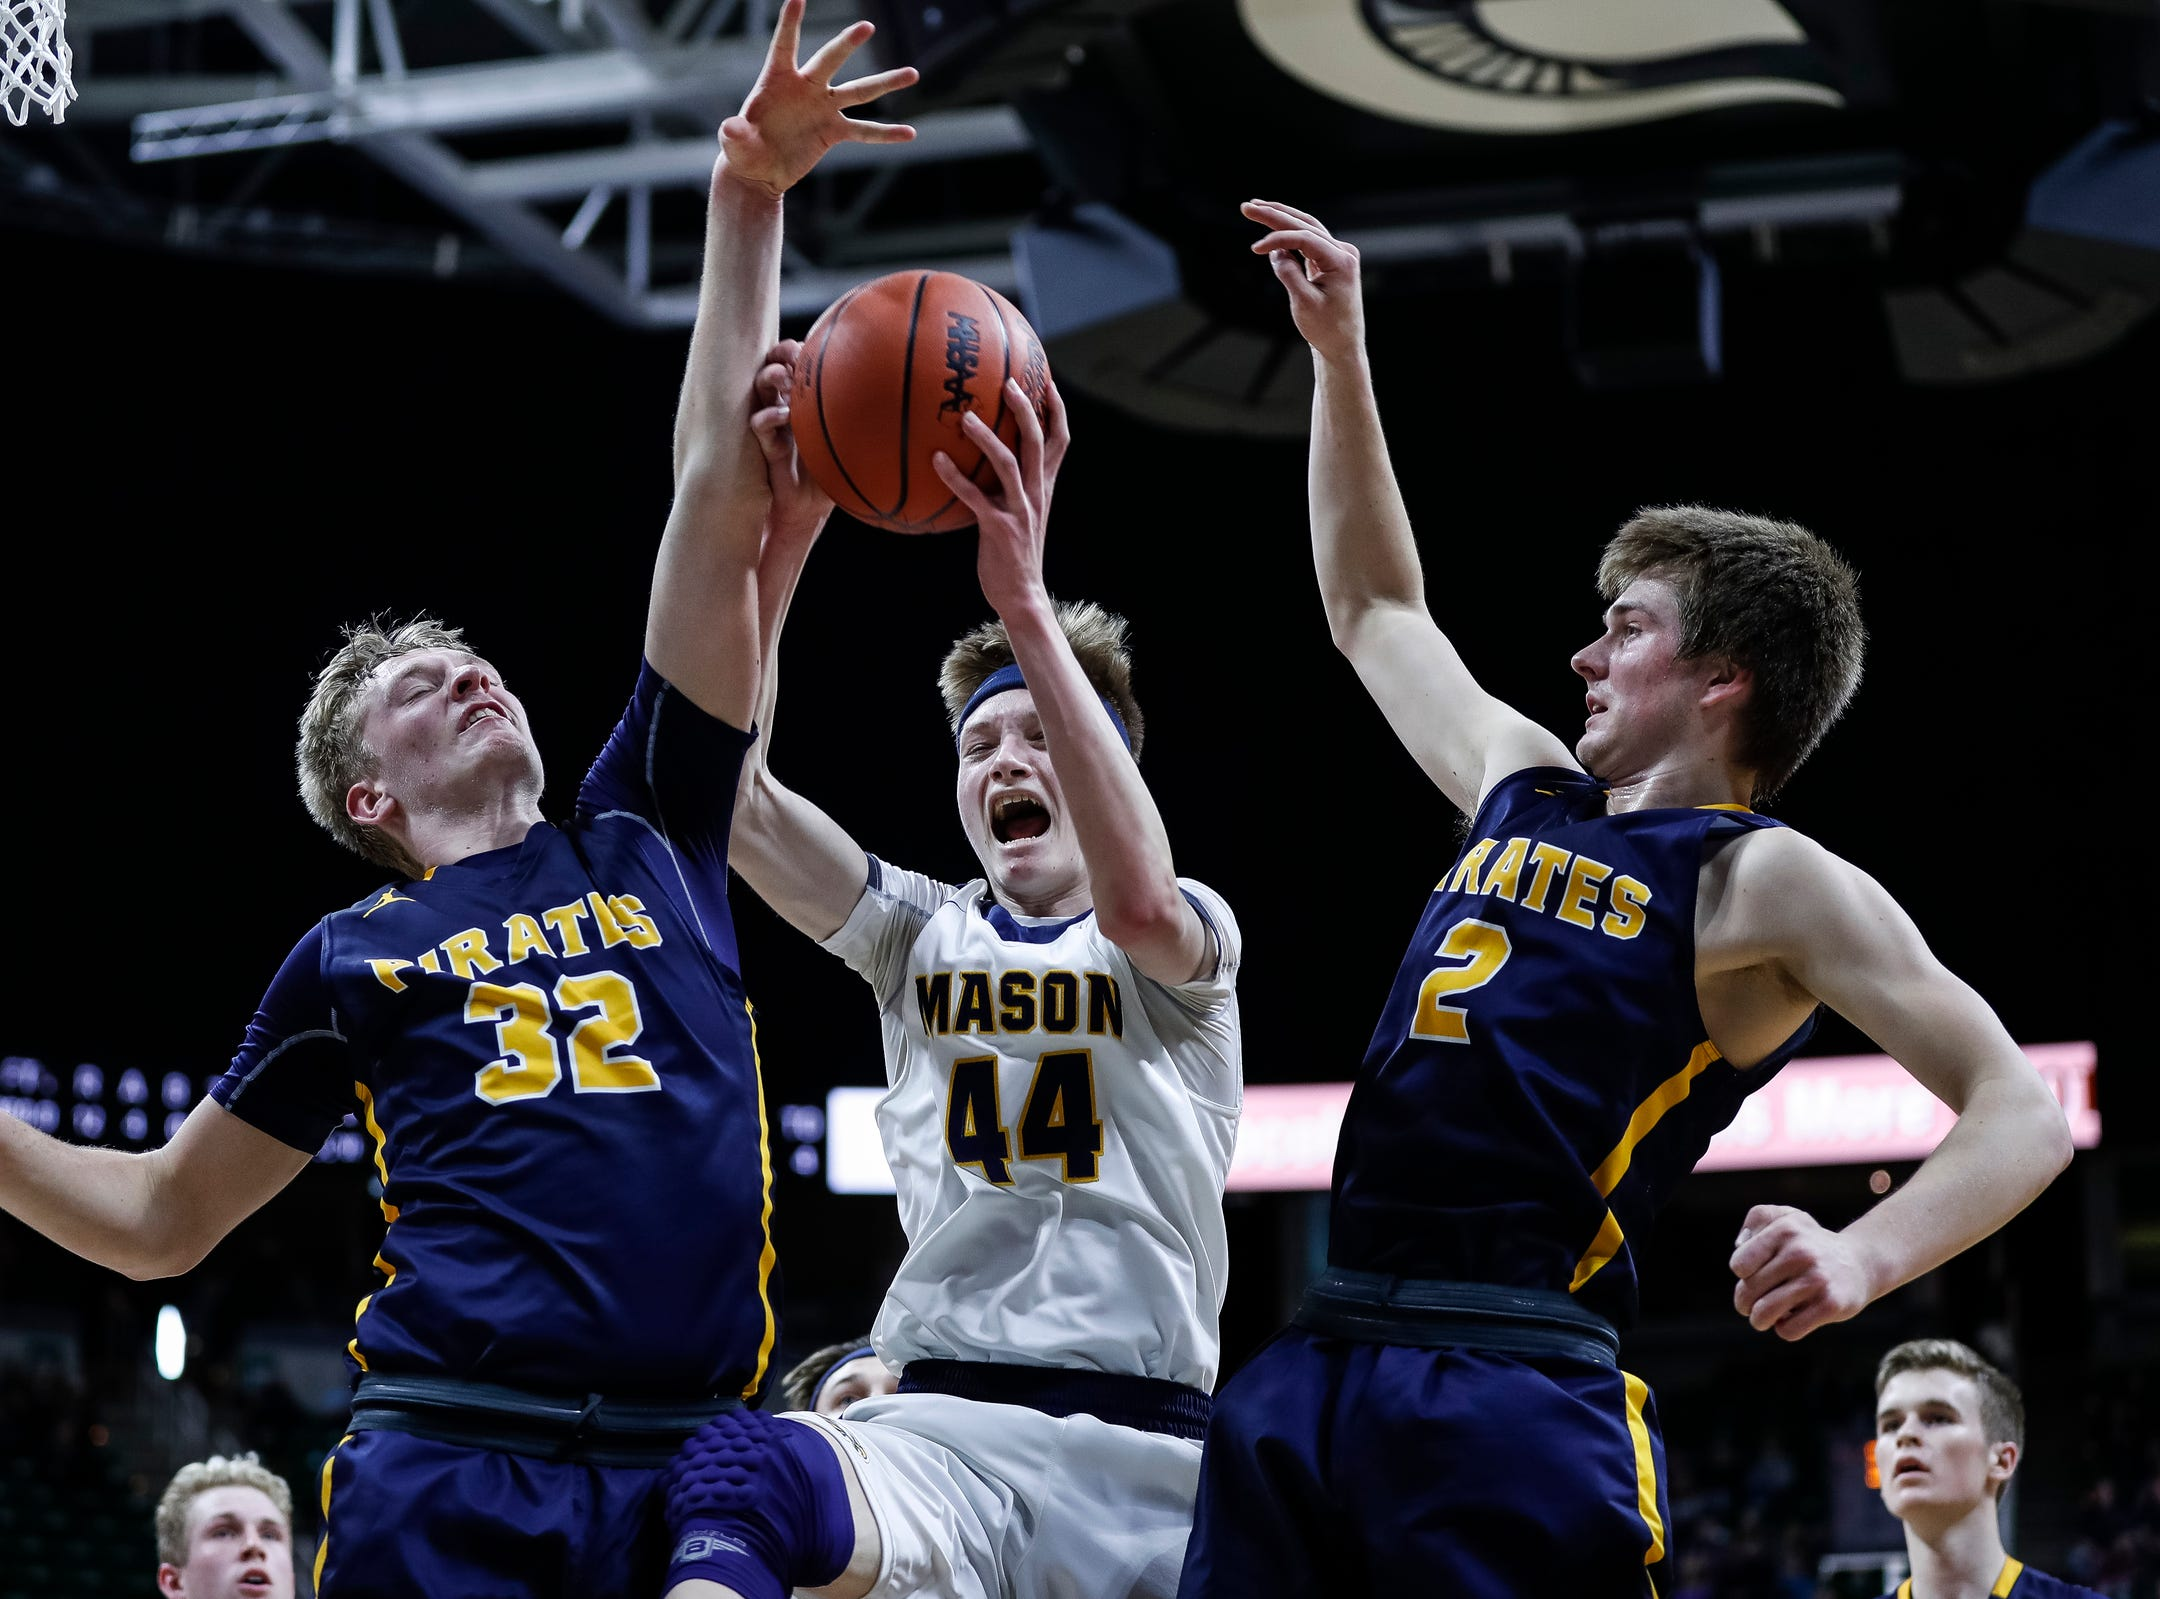 Erie-Mason's John Sweeney (44) battles for a rebound against Pewamo-Westphalia's Andre Smith (32) and Nathan Wirth (2) during the first half of MHSAA Division 3 semifinal at the Breslin Center in East Lansing, Thursday, March 14, 2019.